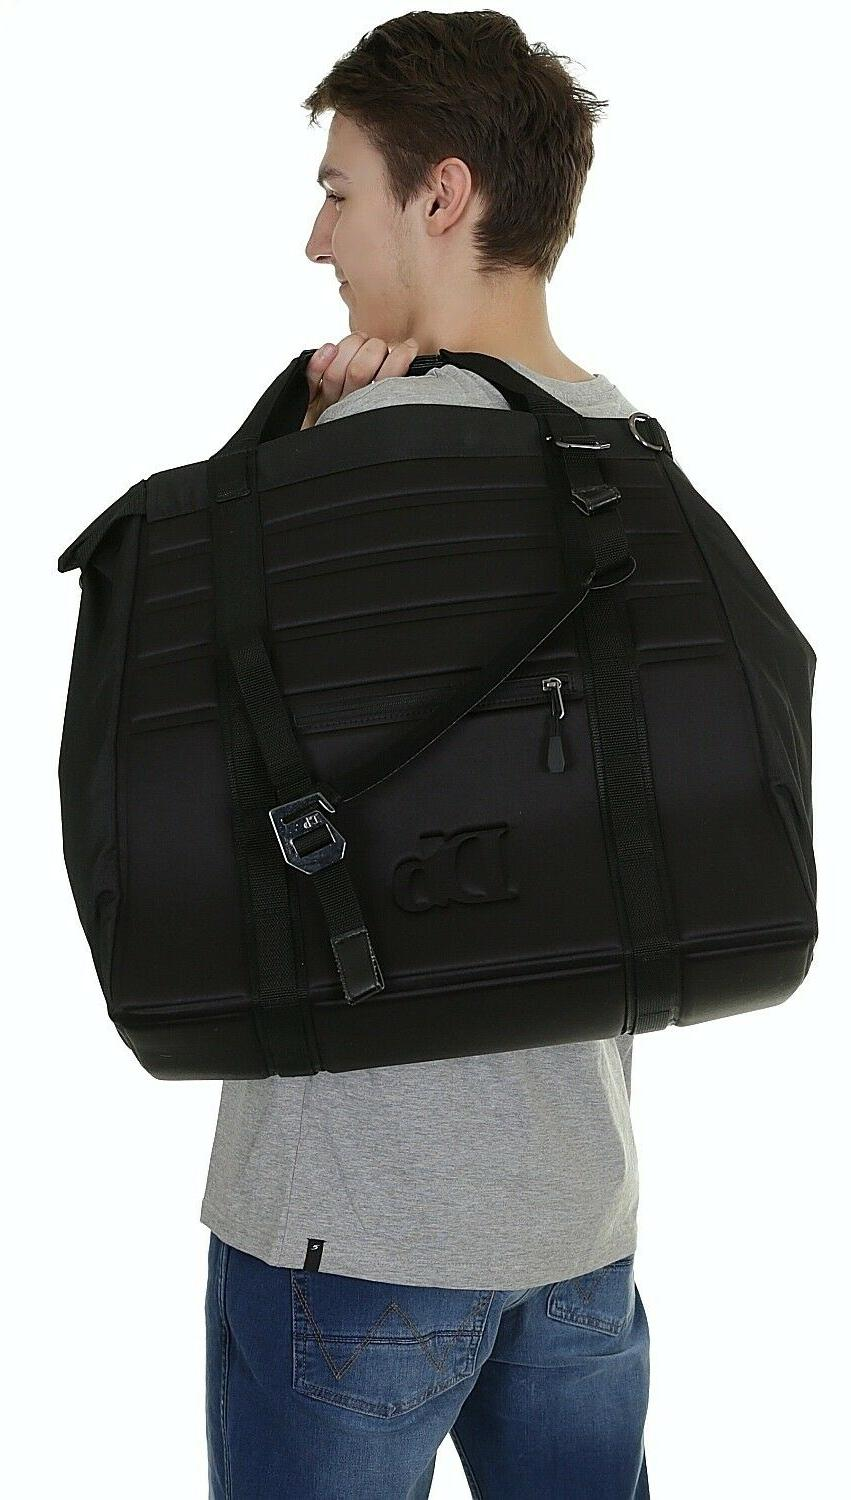 New Douchebags The Affair 40L Holder Gym Travel Carry Pitch Black